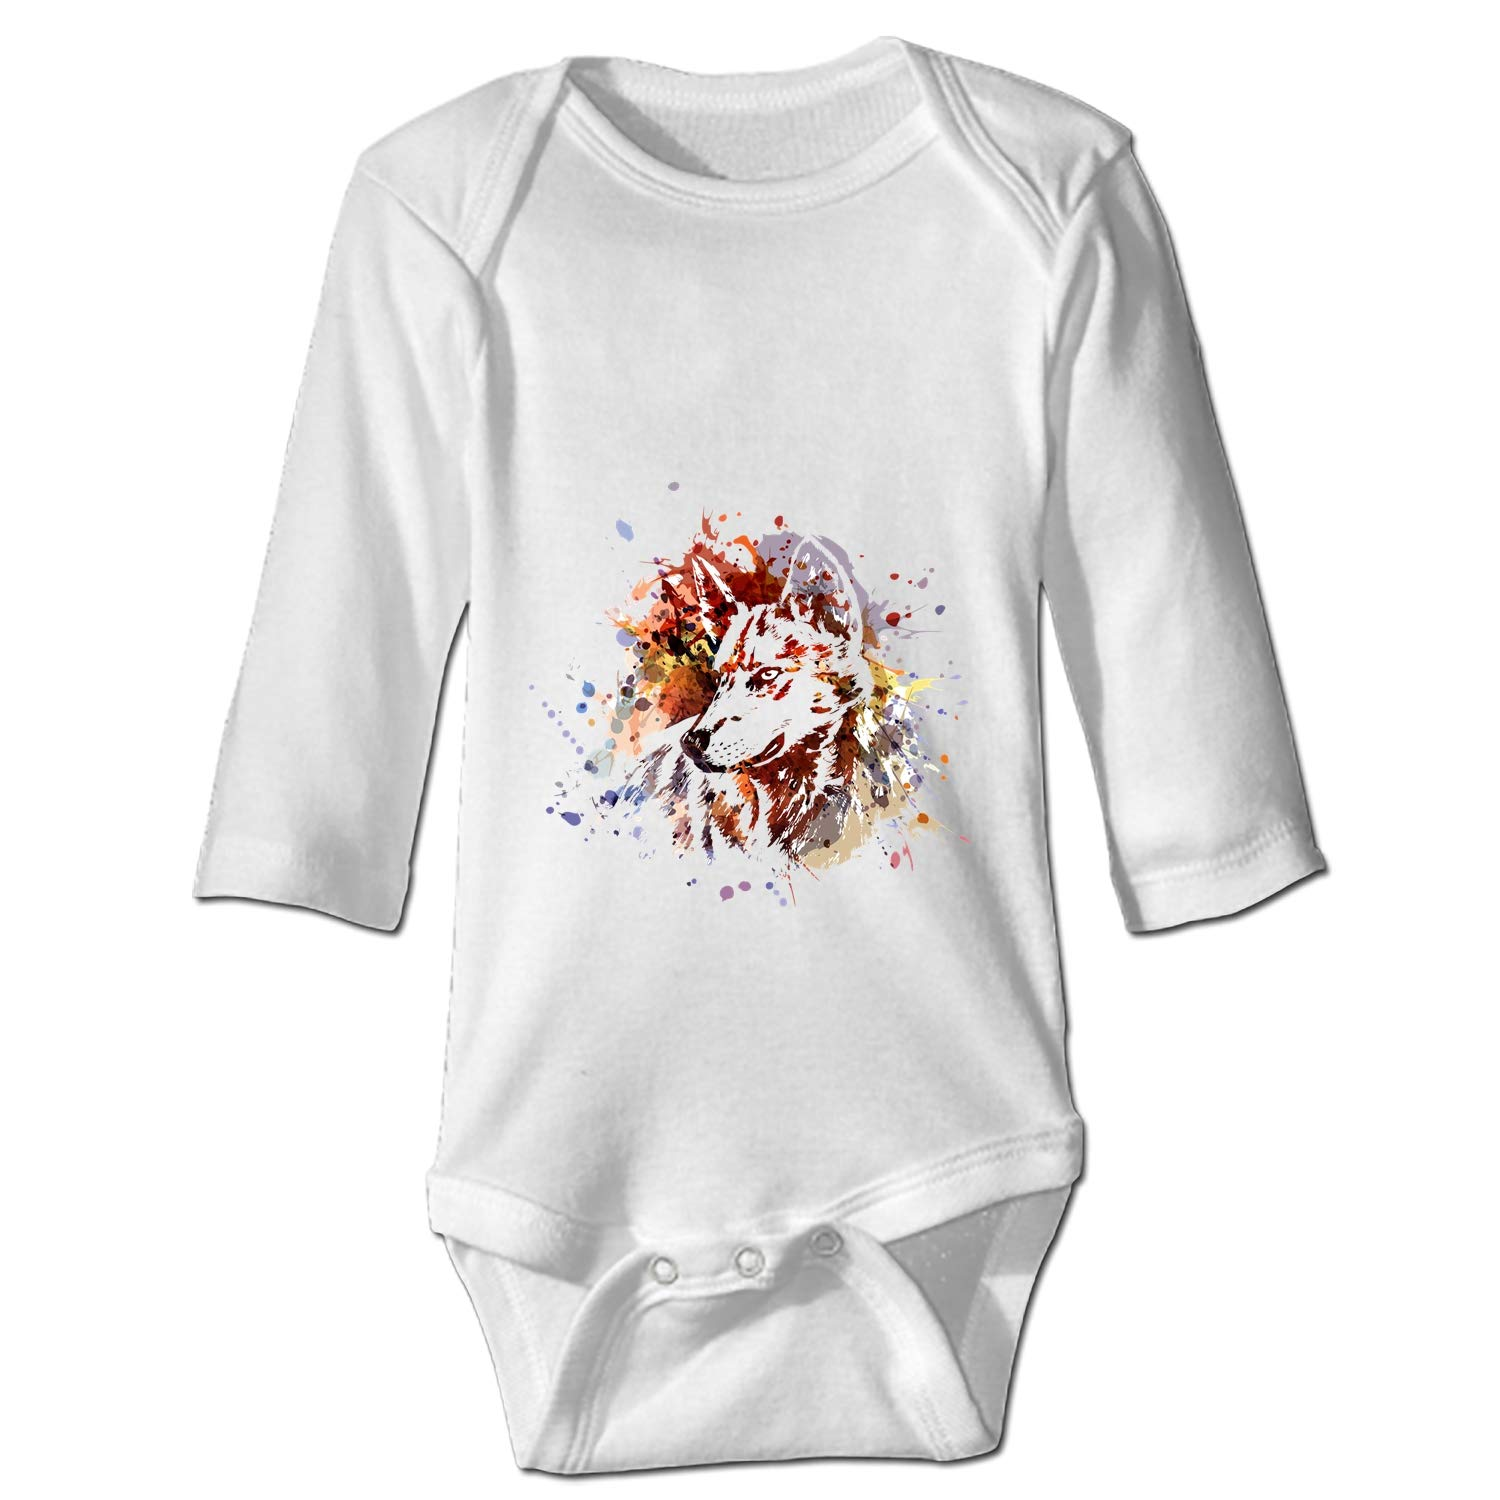 BABBY Kawaii Dachshund Printed Personalized Infant Bodysuit One-Piece